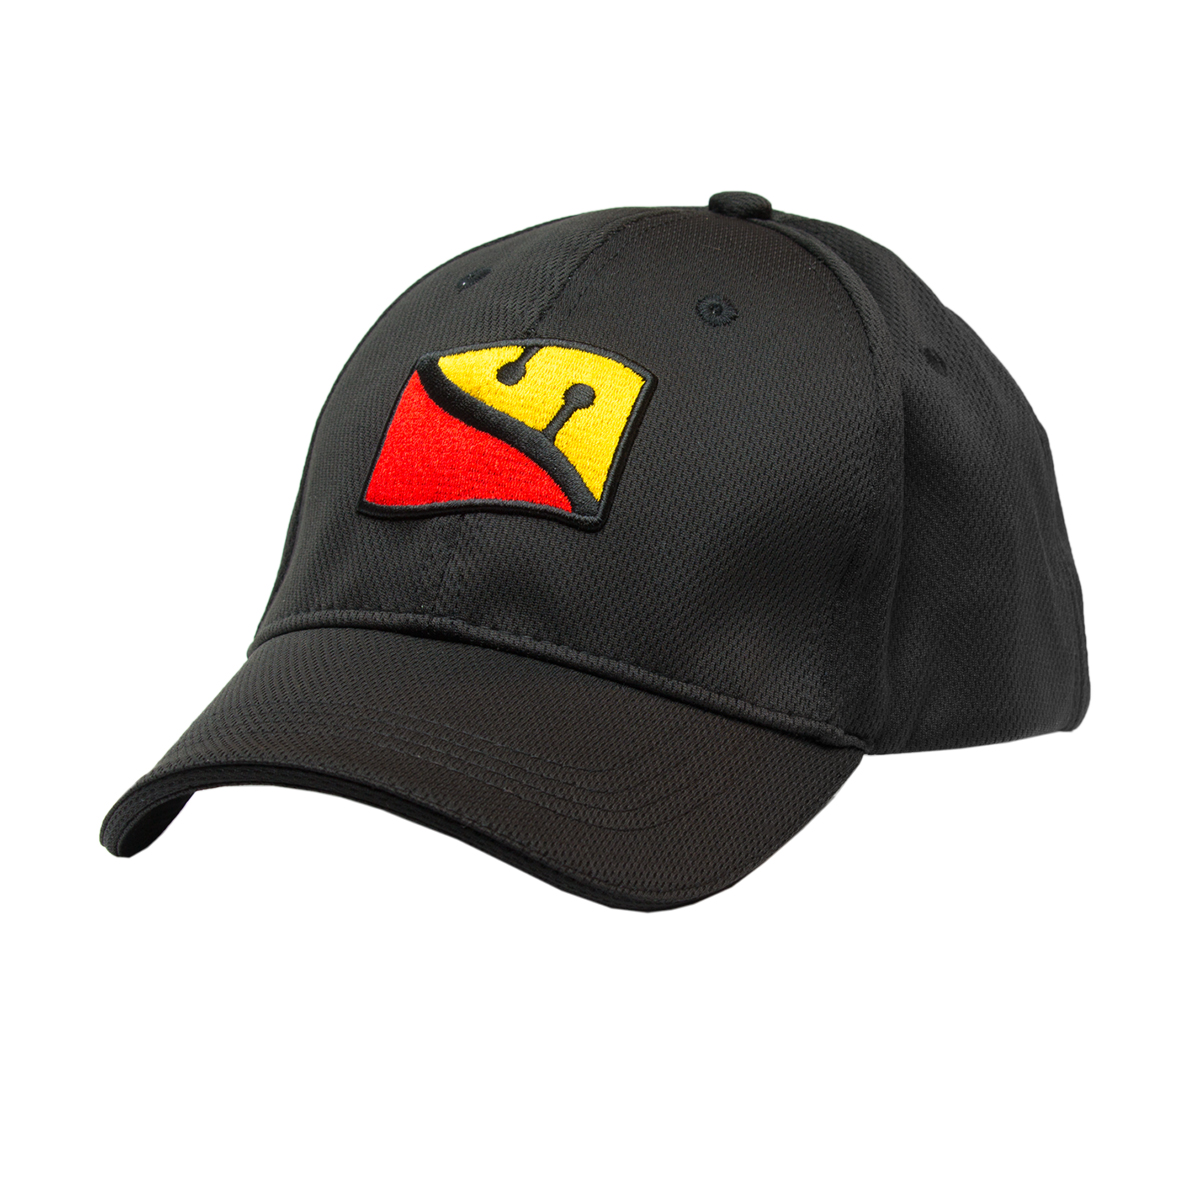 Flag logo hat dive rite for Hats and shirts with company logo